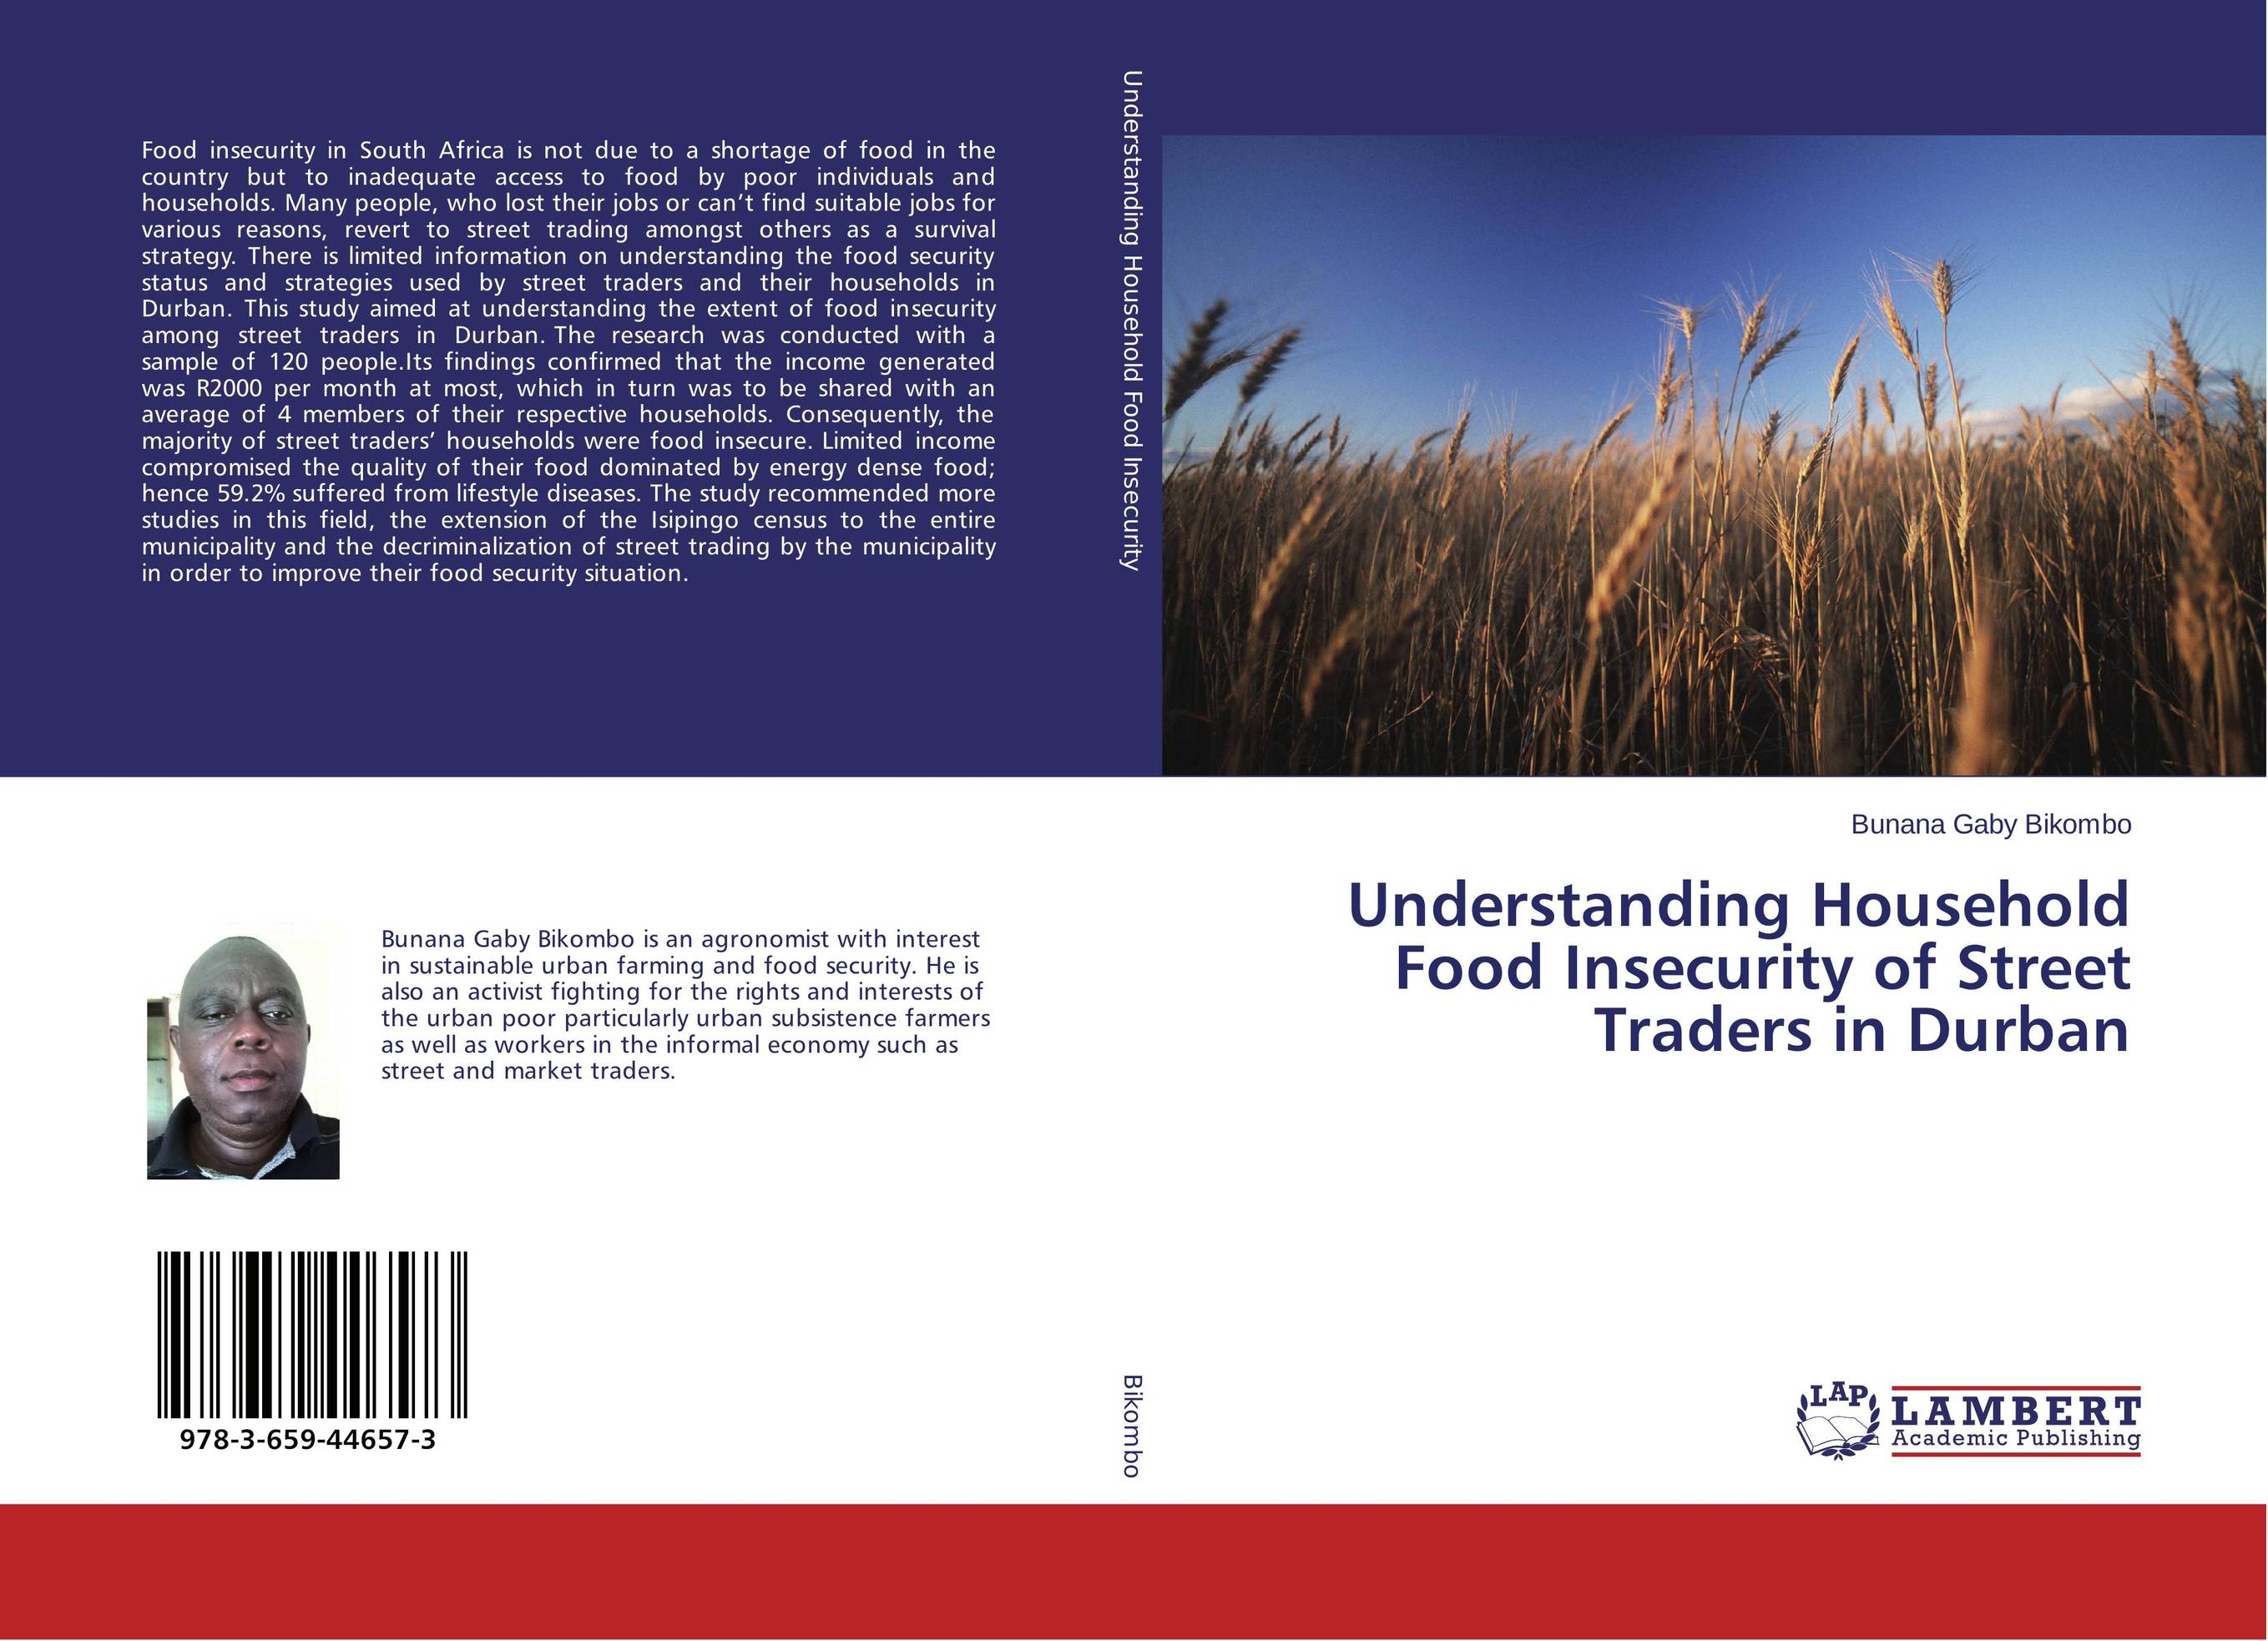 Understanding Household Food Insecurity of Street Traders in Durban street food vendors